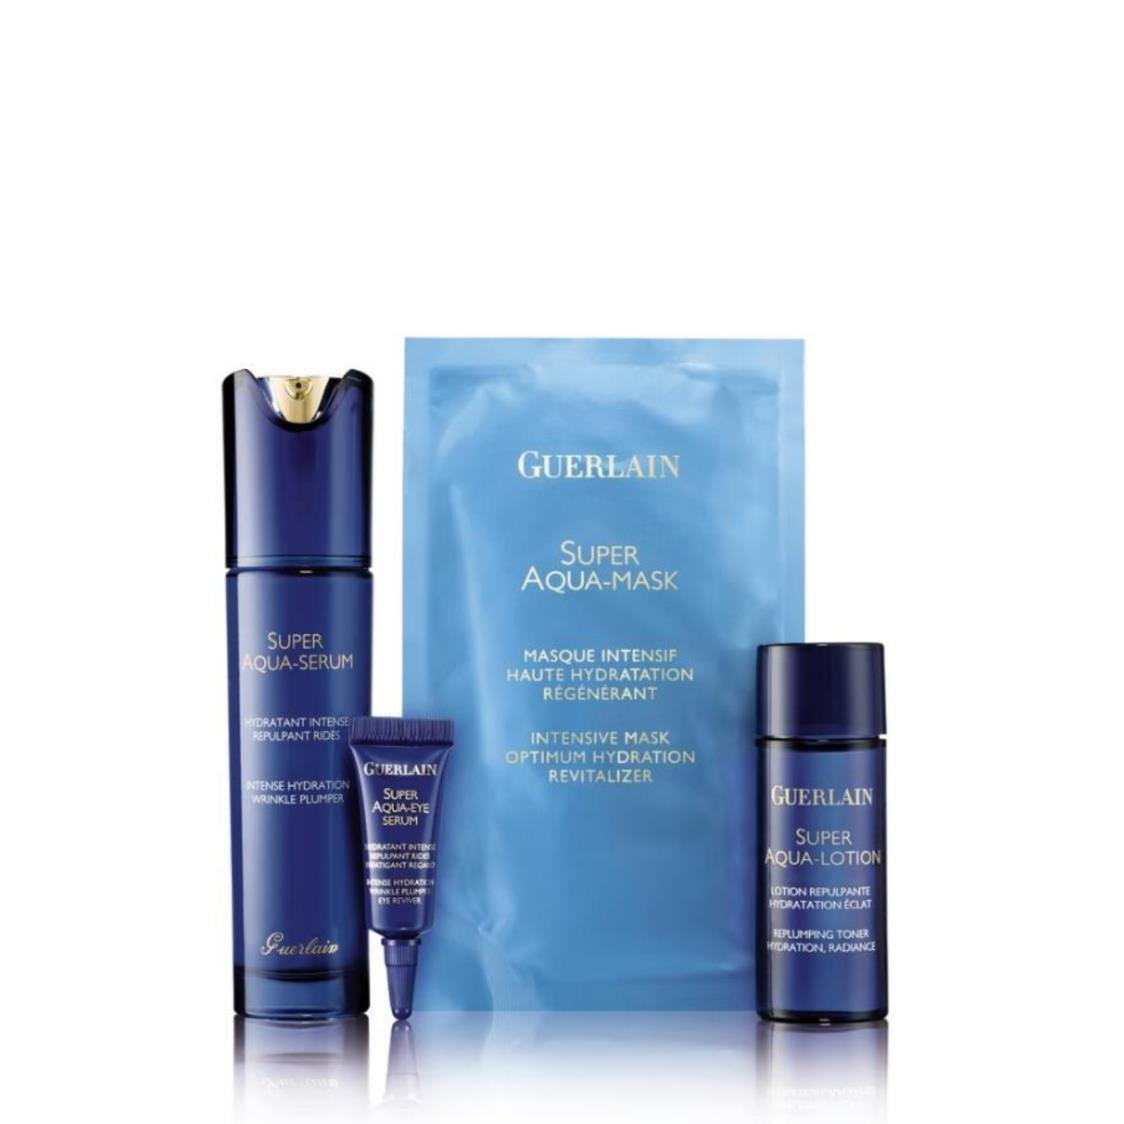 Guerlain Superaqua Serum Set